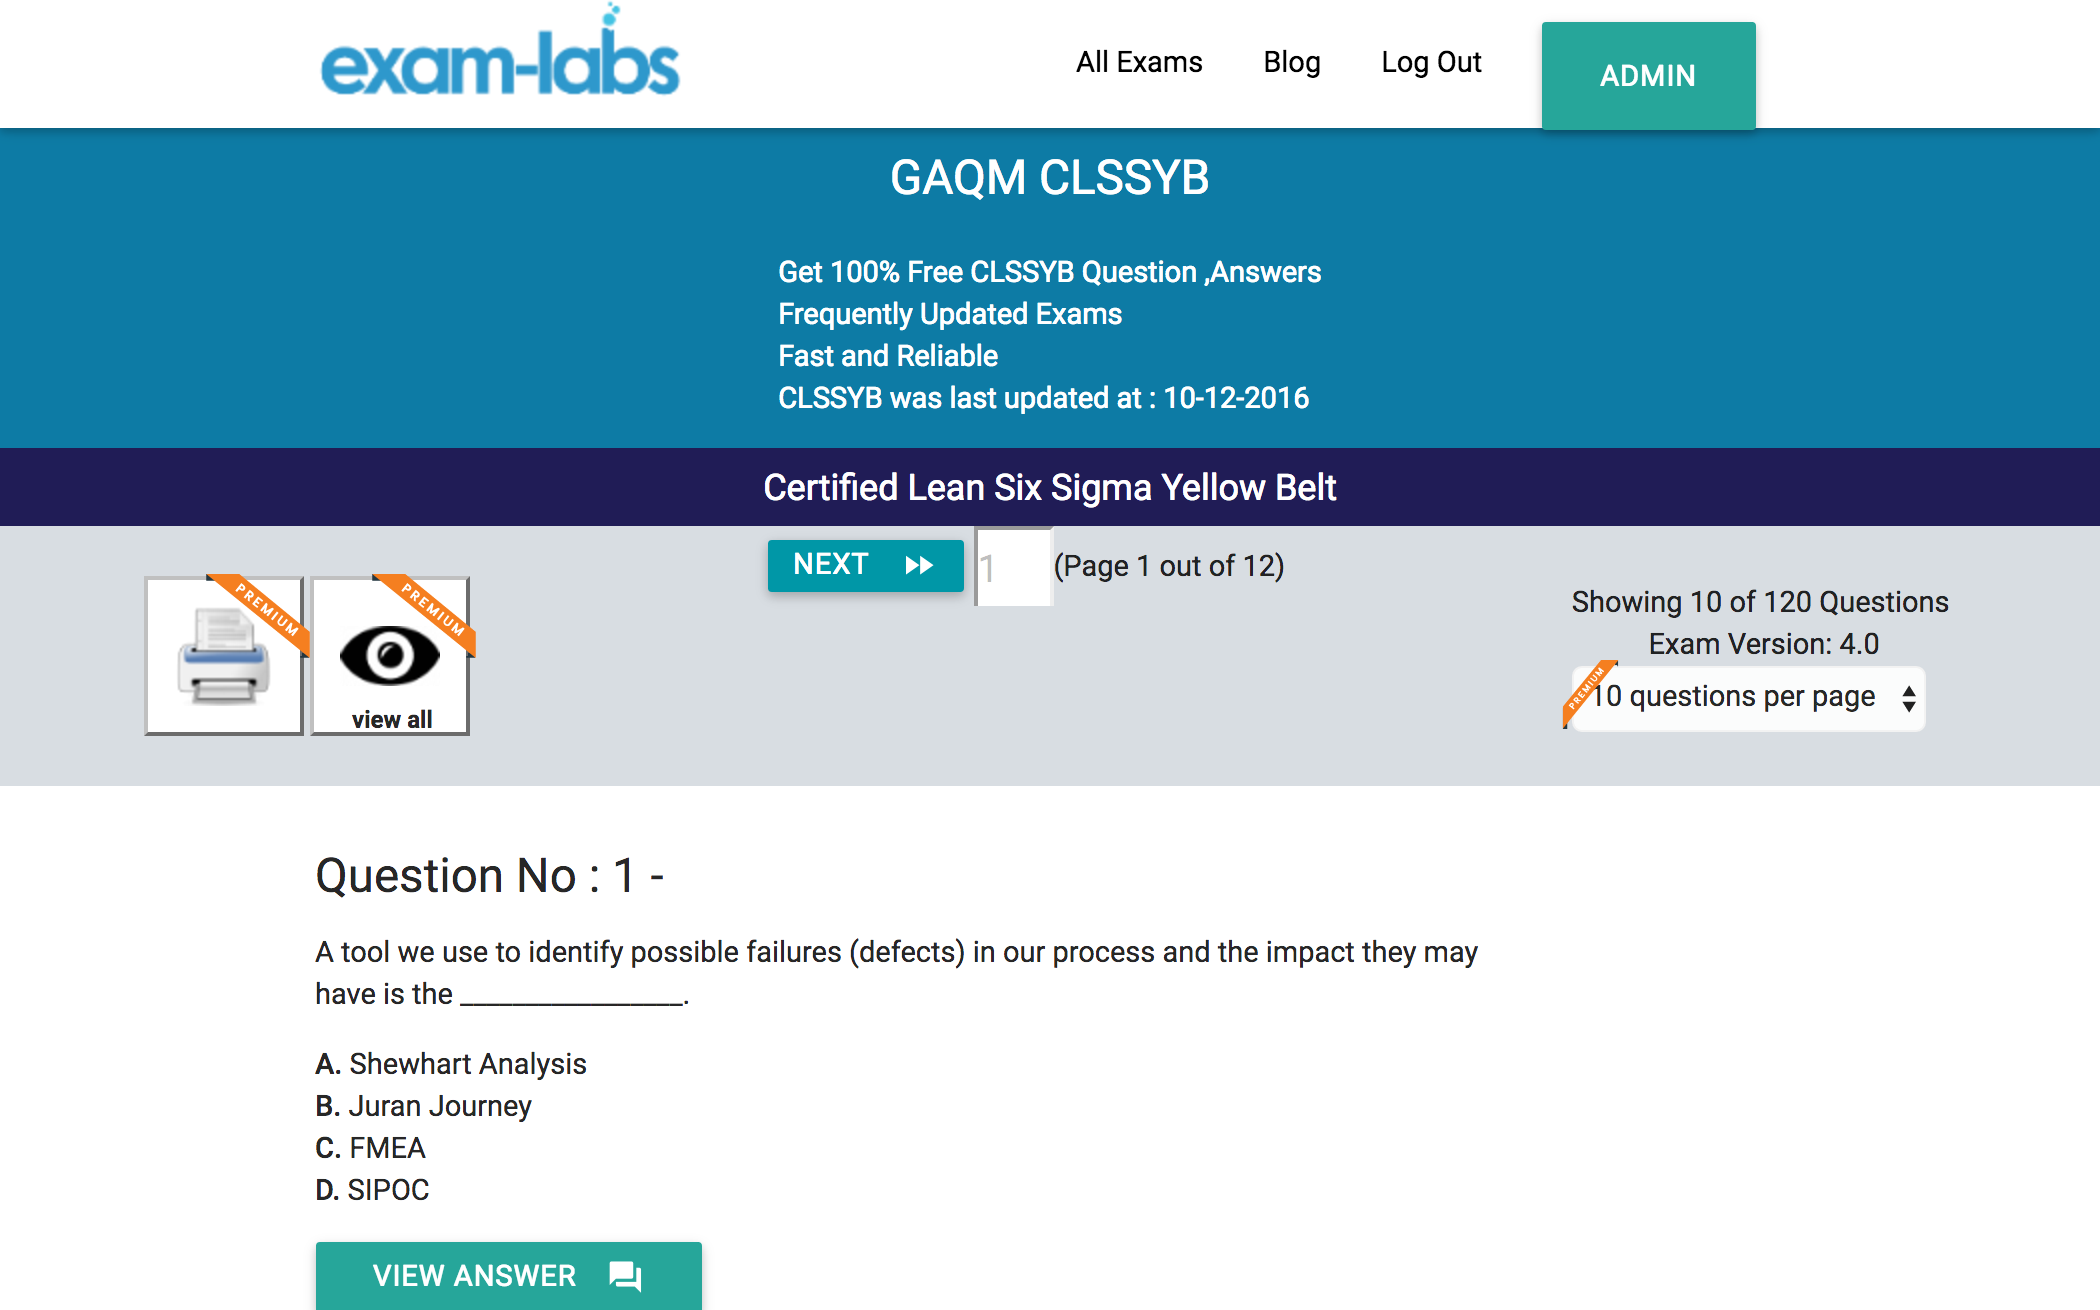 Clssyb gaqm real exam questions 100 free exam labs gaqm clssyb certified lean six sigma yellow belt exam xflitez Images